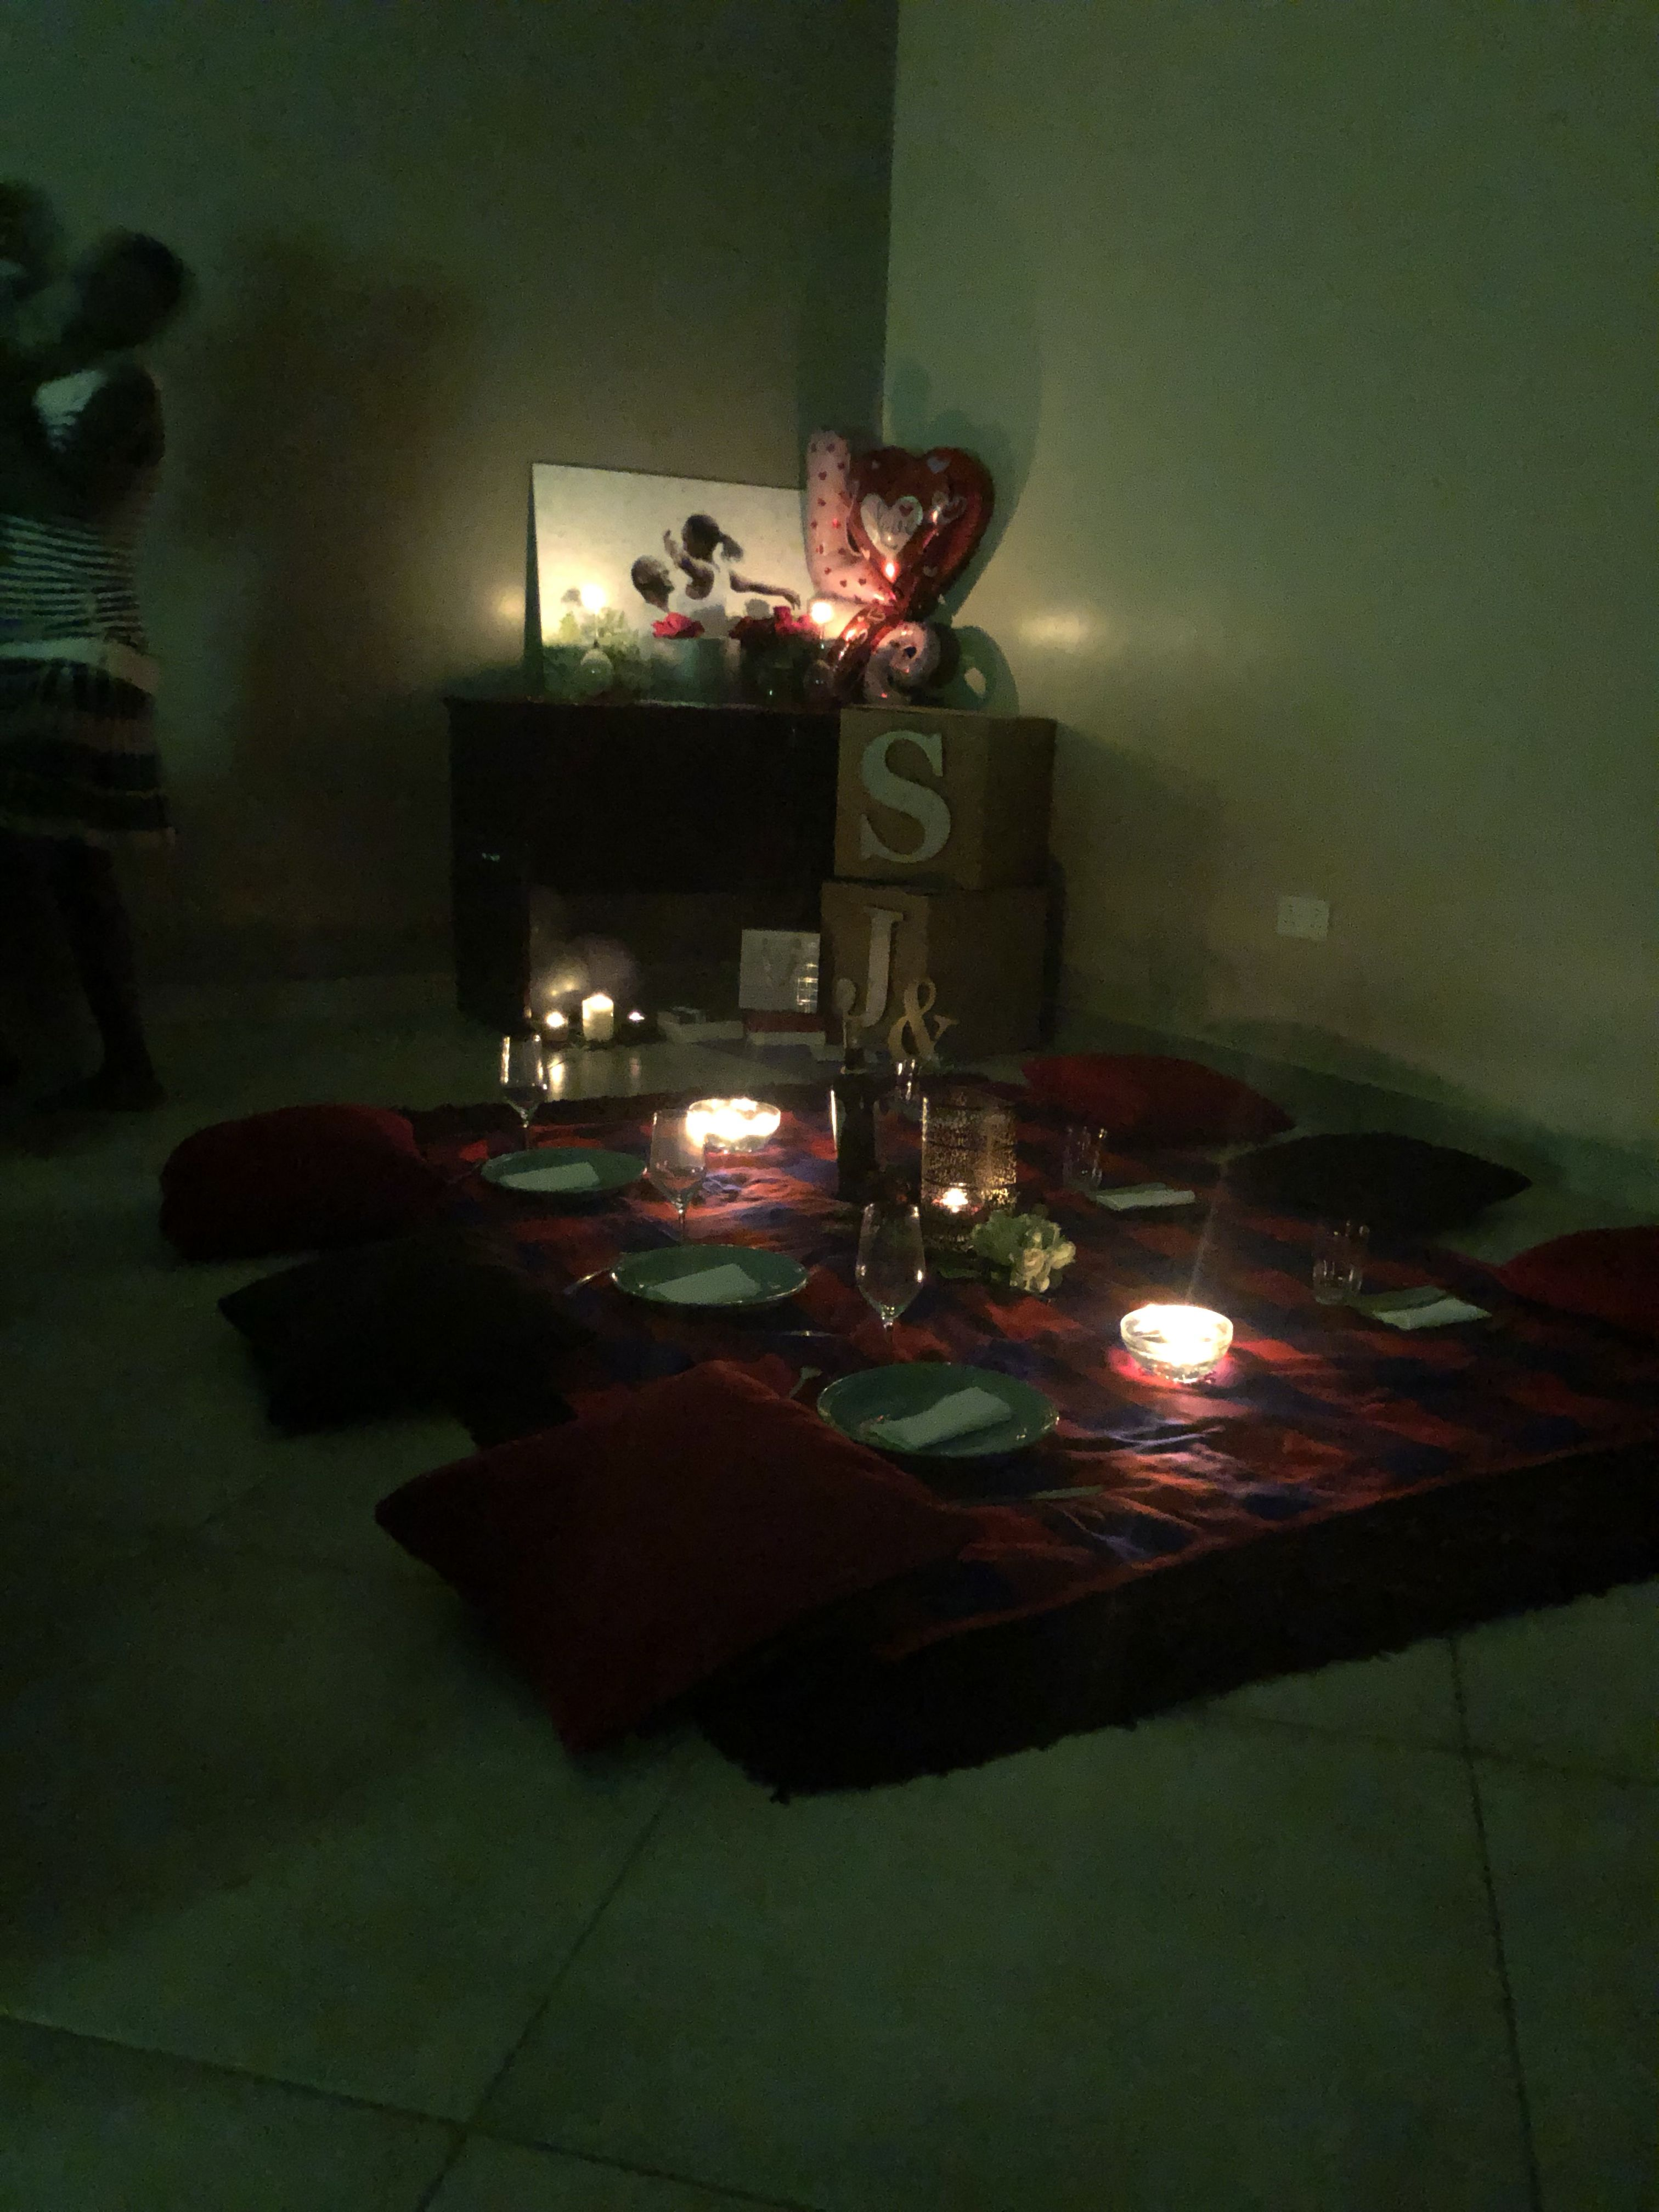 Intimate Indoor Picnic Indoor Candlelight